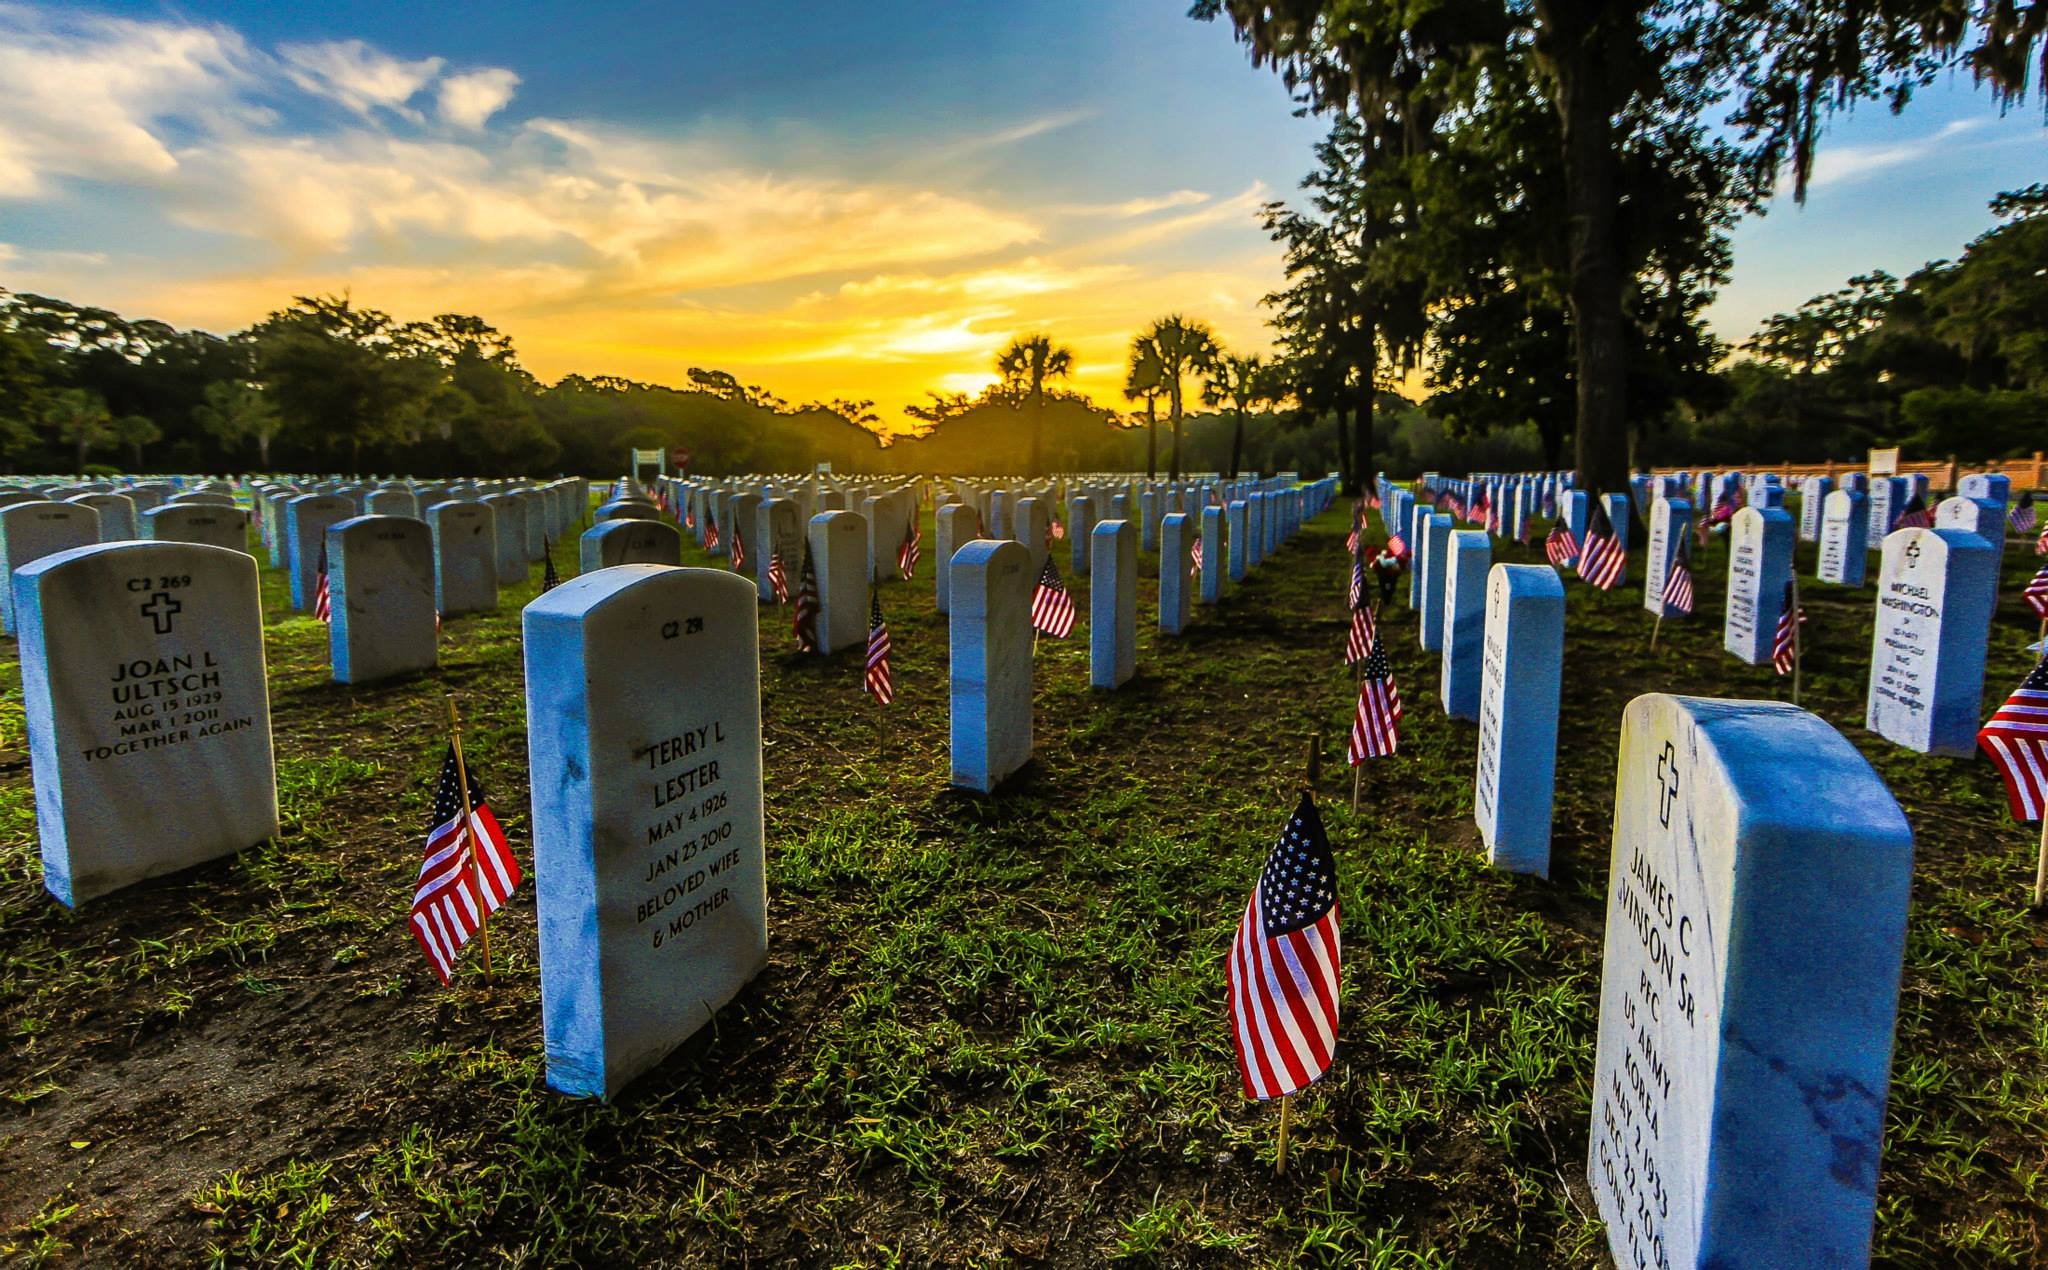 The Beaufort National Cemetery has interments from every major U.S. conflict in history.